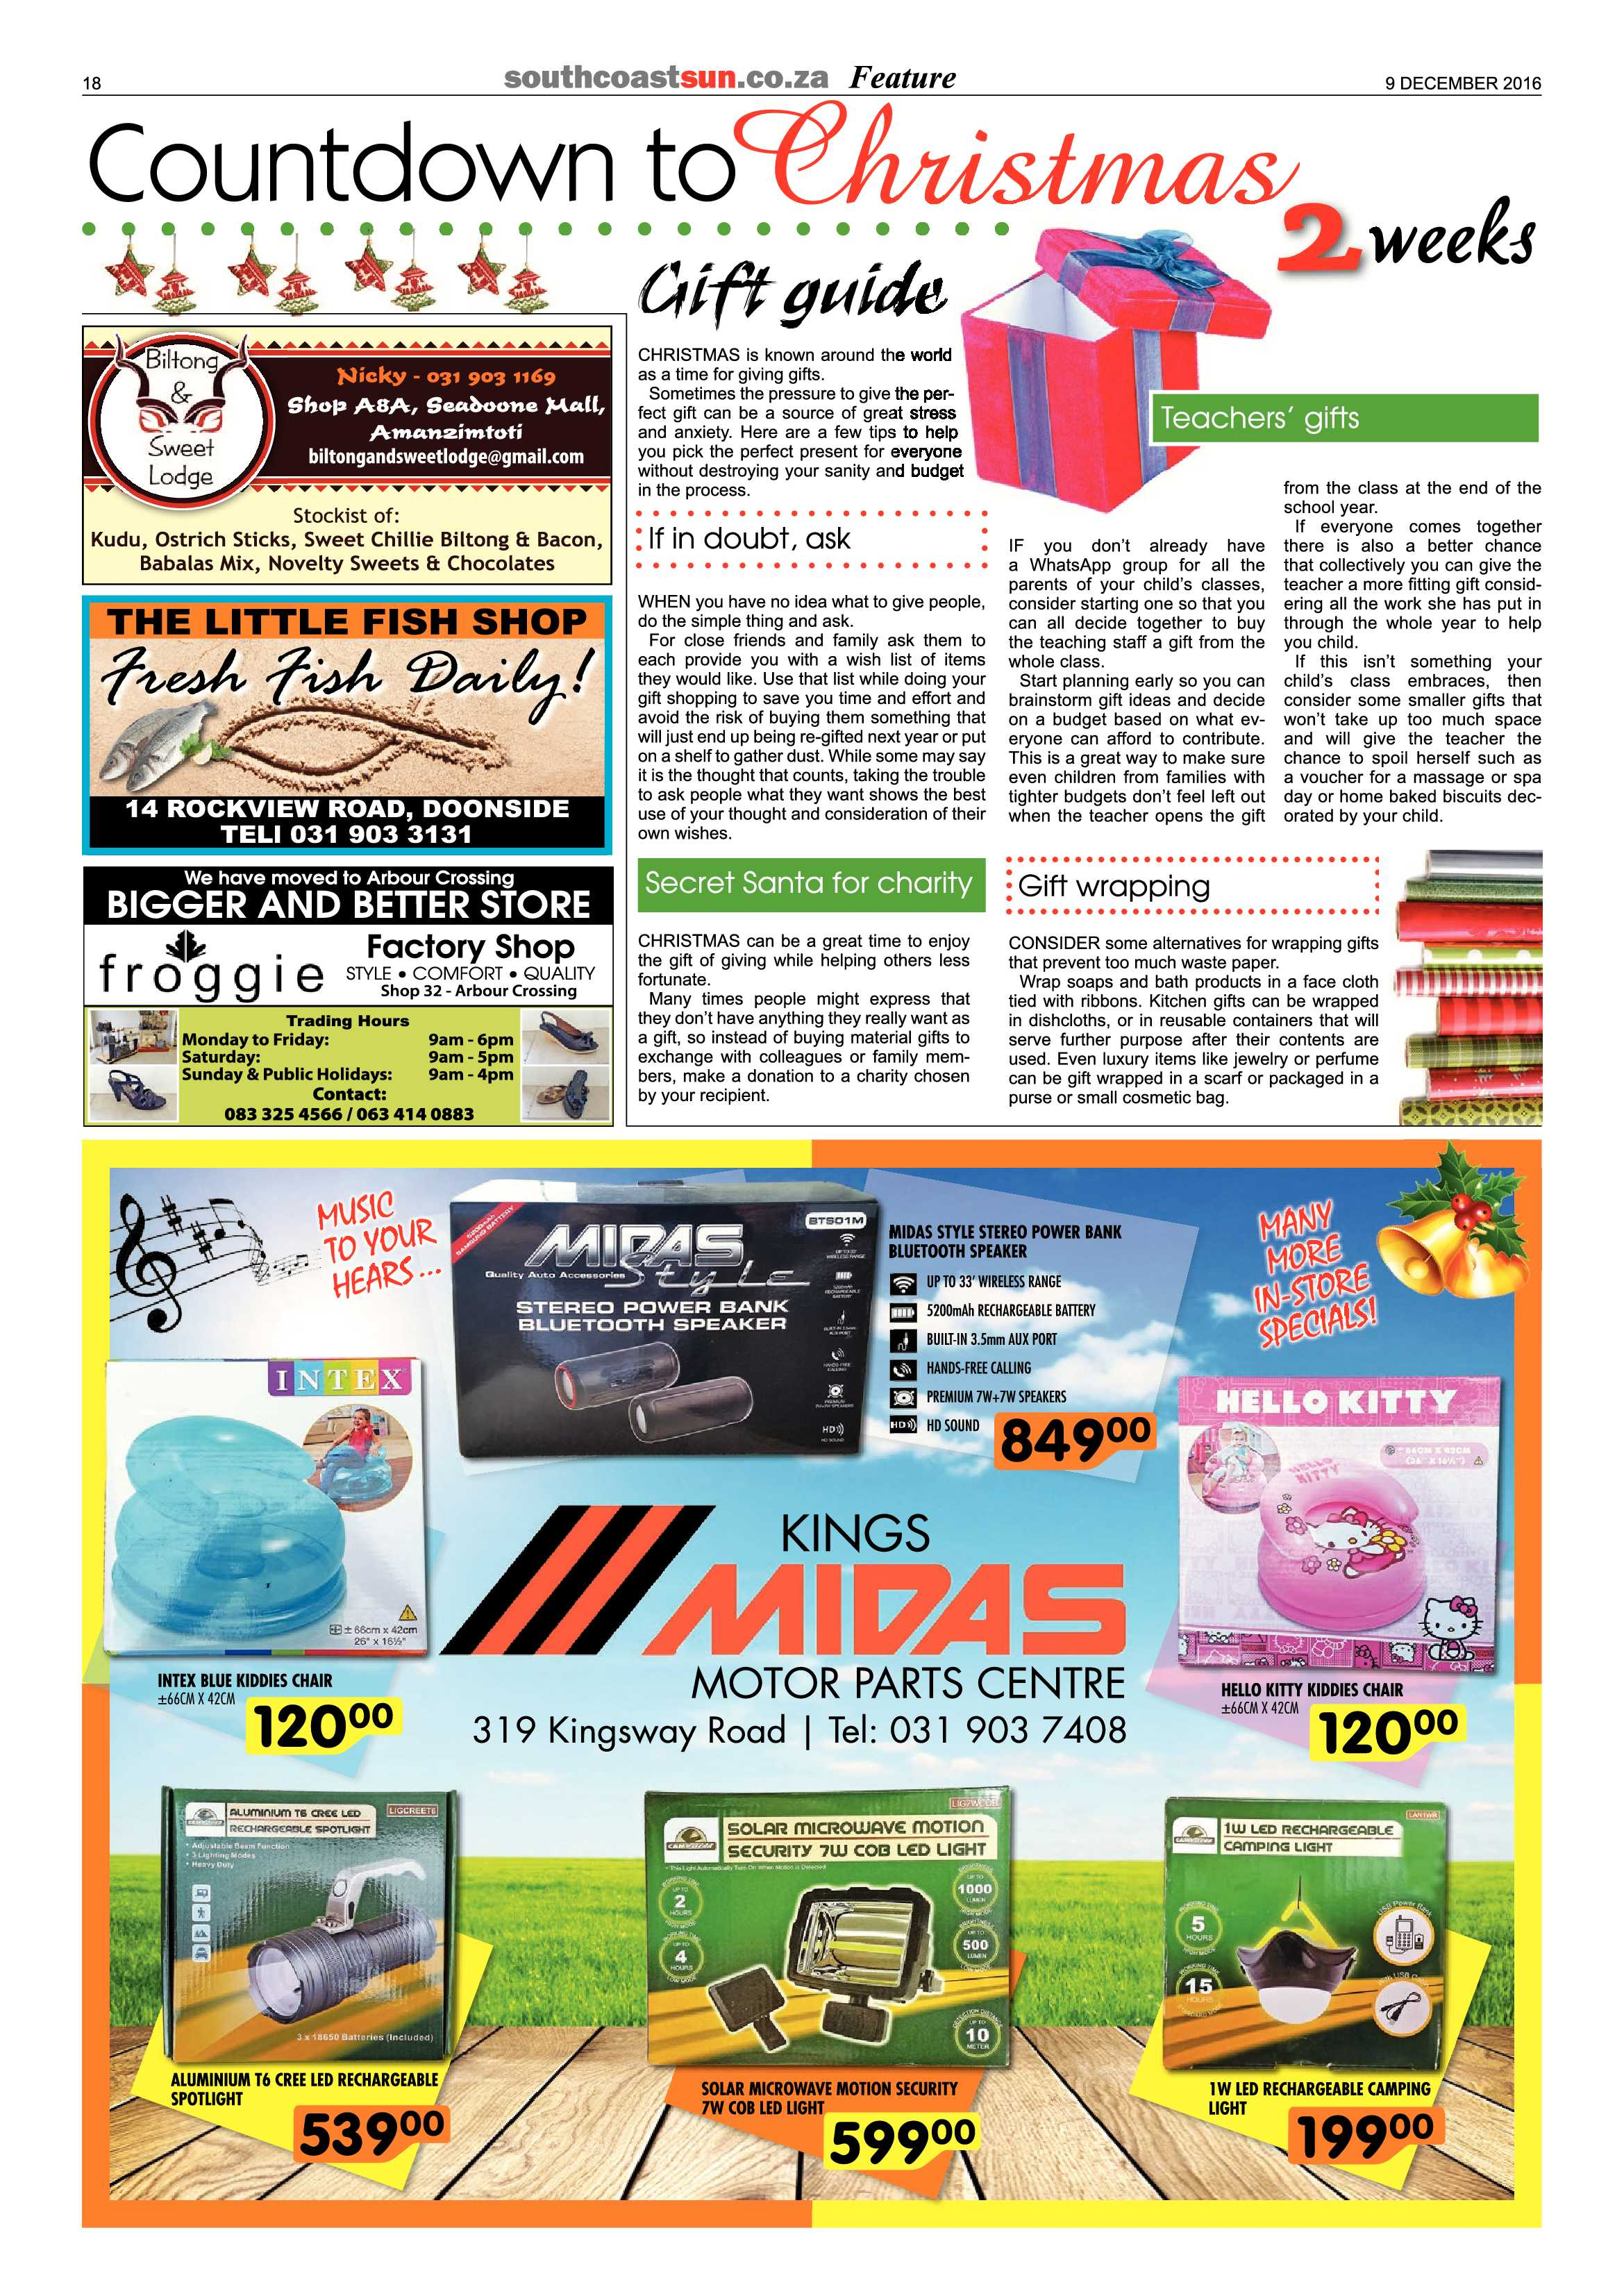 9-december-2016-epapers-page-18